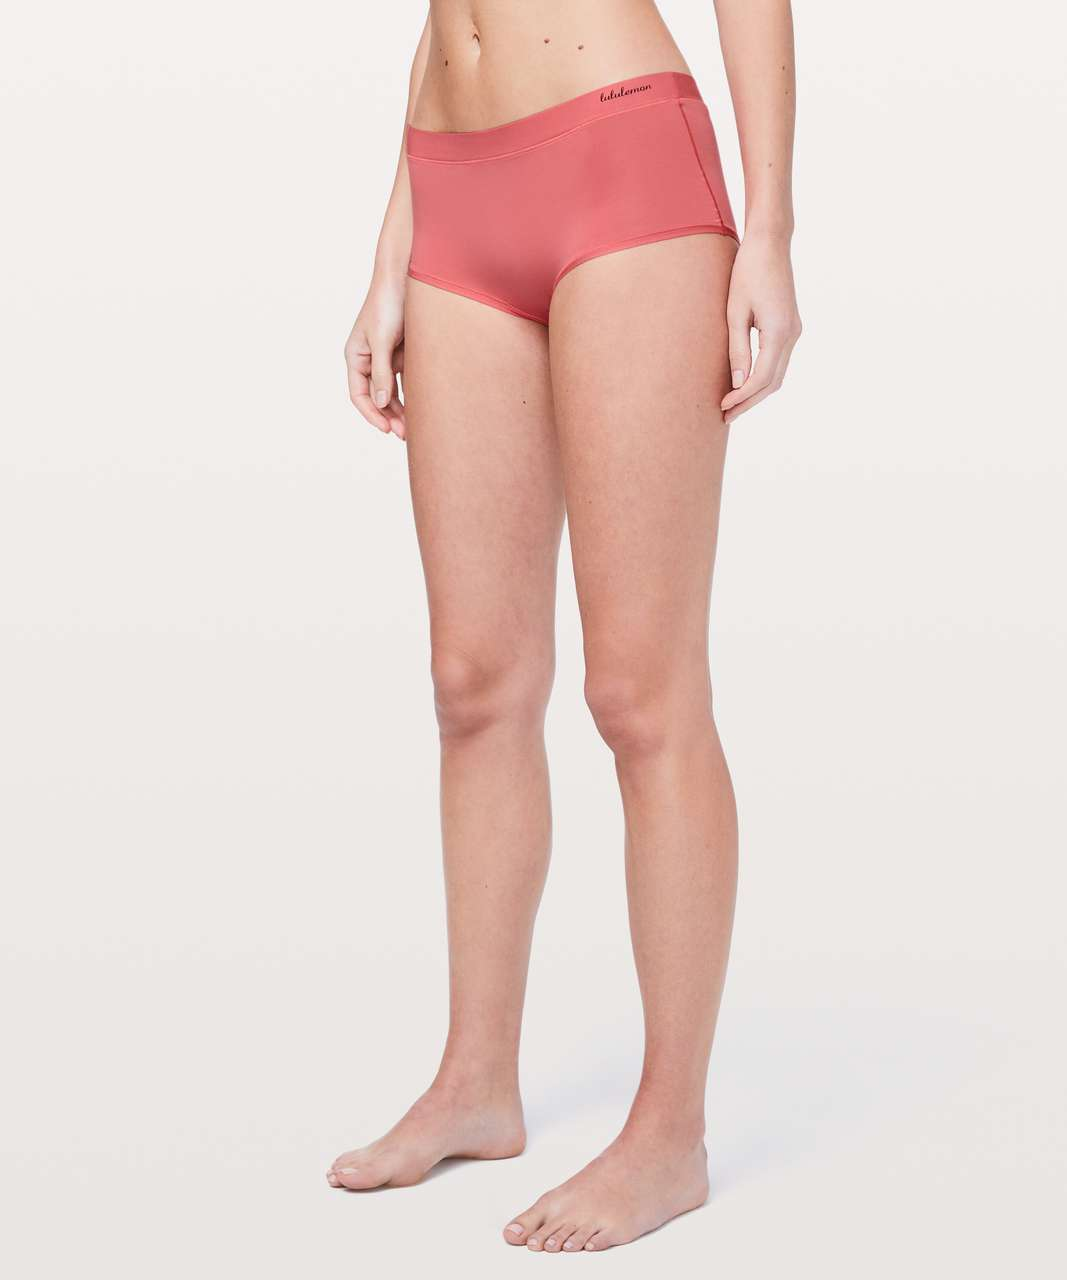 a53bc817f Lululemon Simply There Boyshort - Blush Coral - lulu fanatics